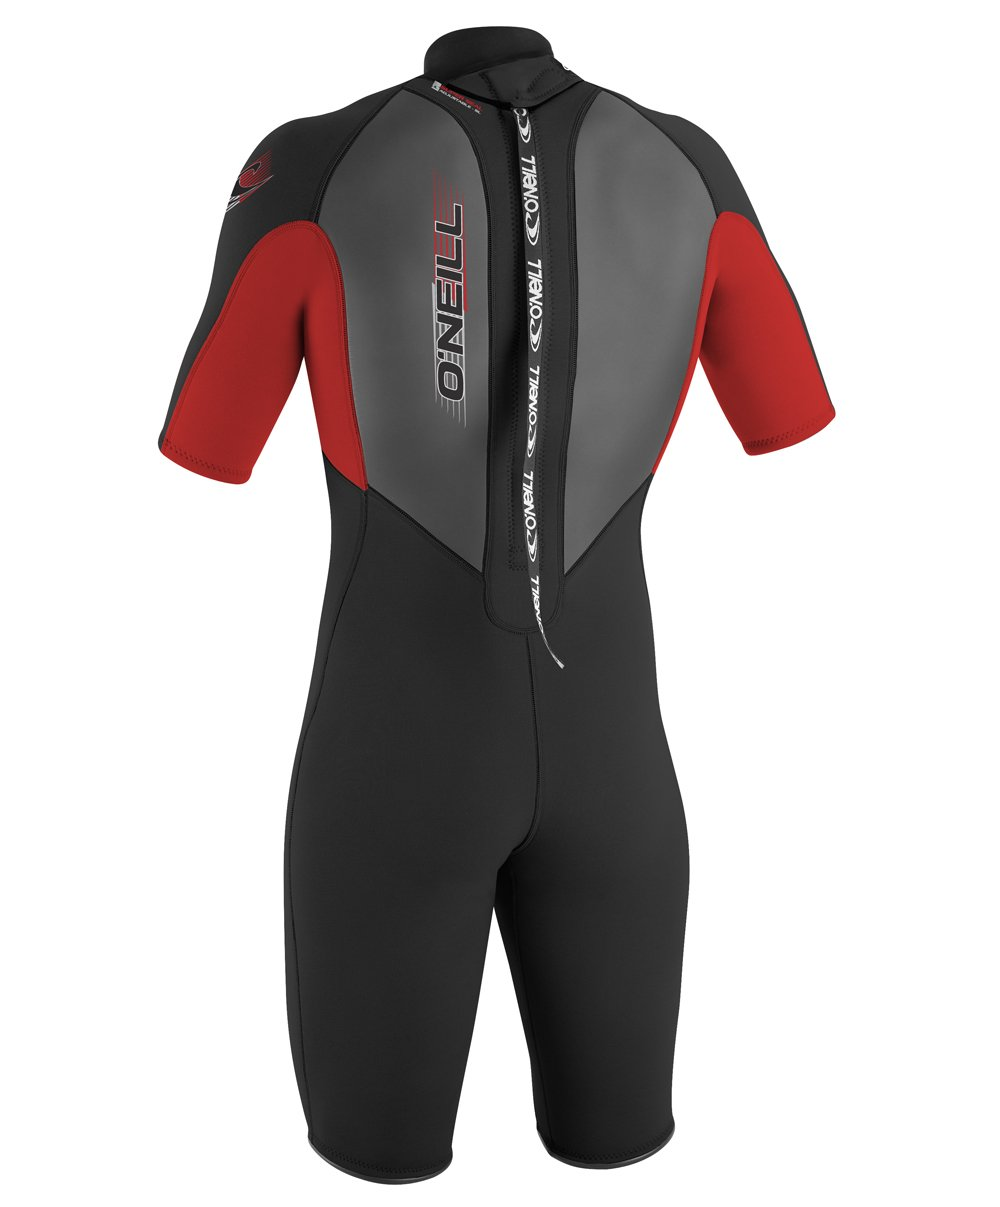 O'Neill Youth Reactor 2mm Back Zip Spring Wetsuit, Black/Red/Black, 6 by O'Neill Wetsuits (Image #3)